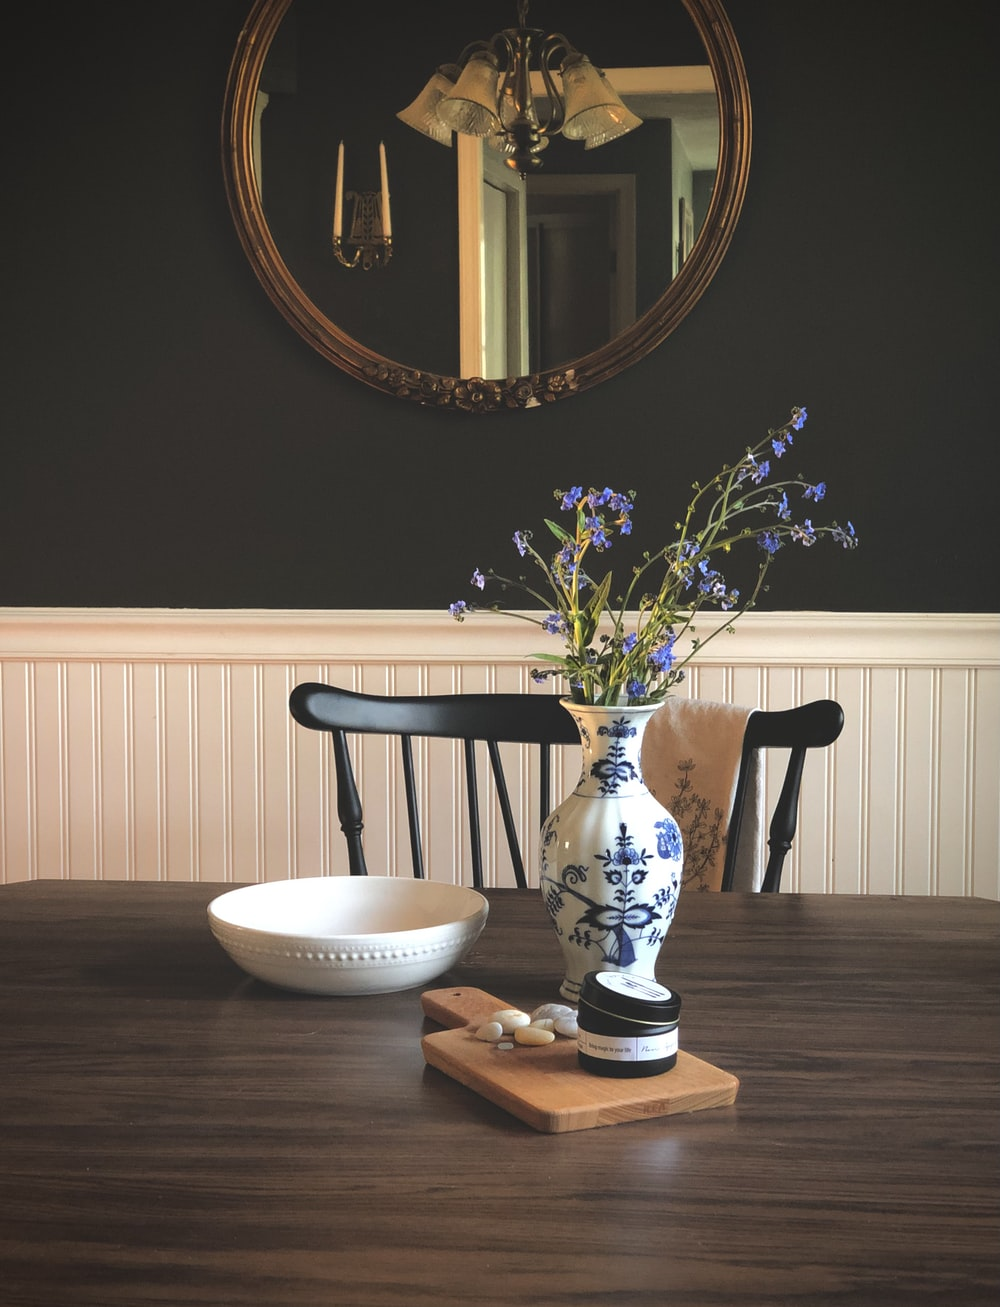 white ceramic bowl on brown wooden table